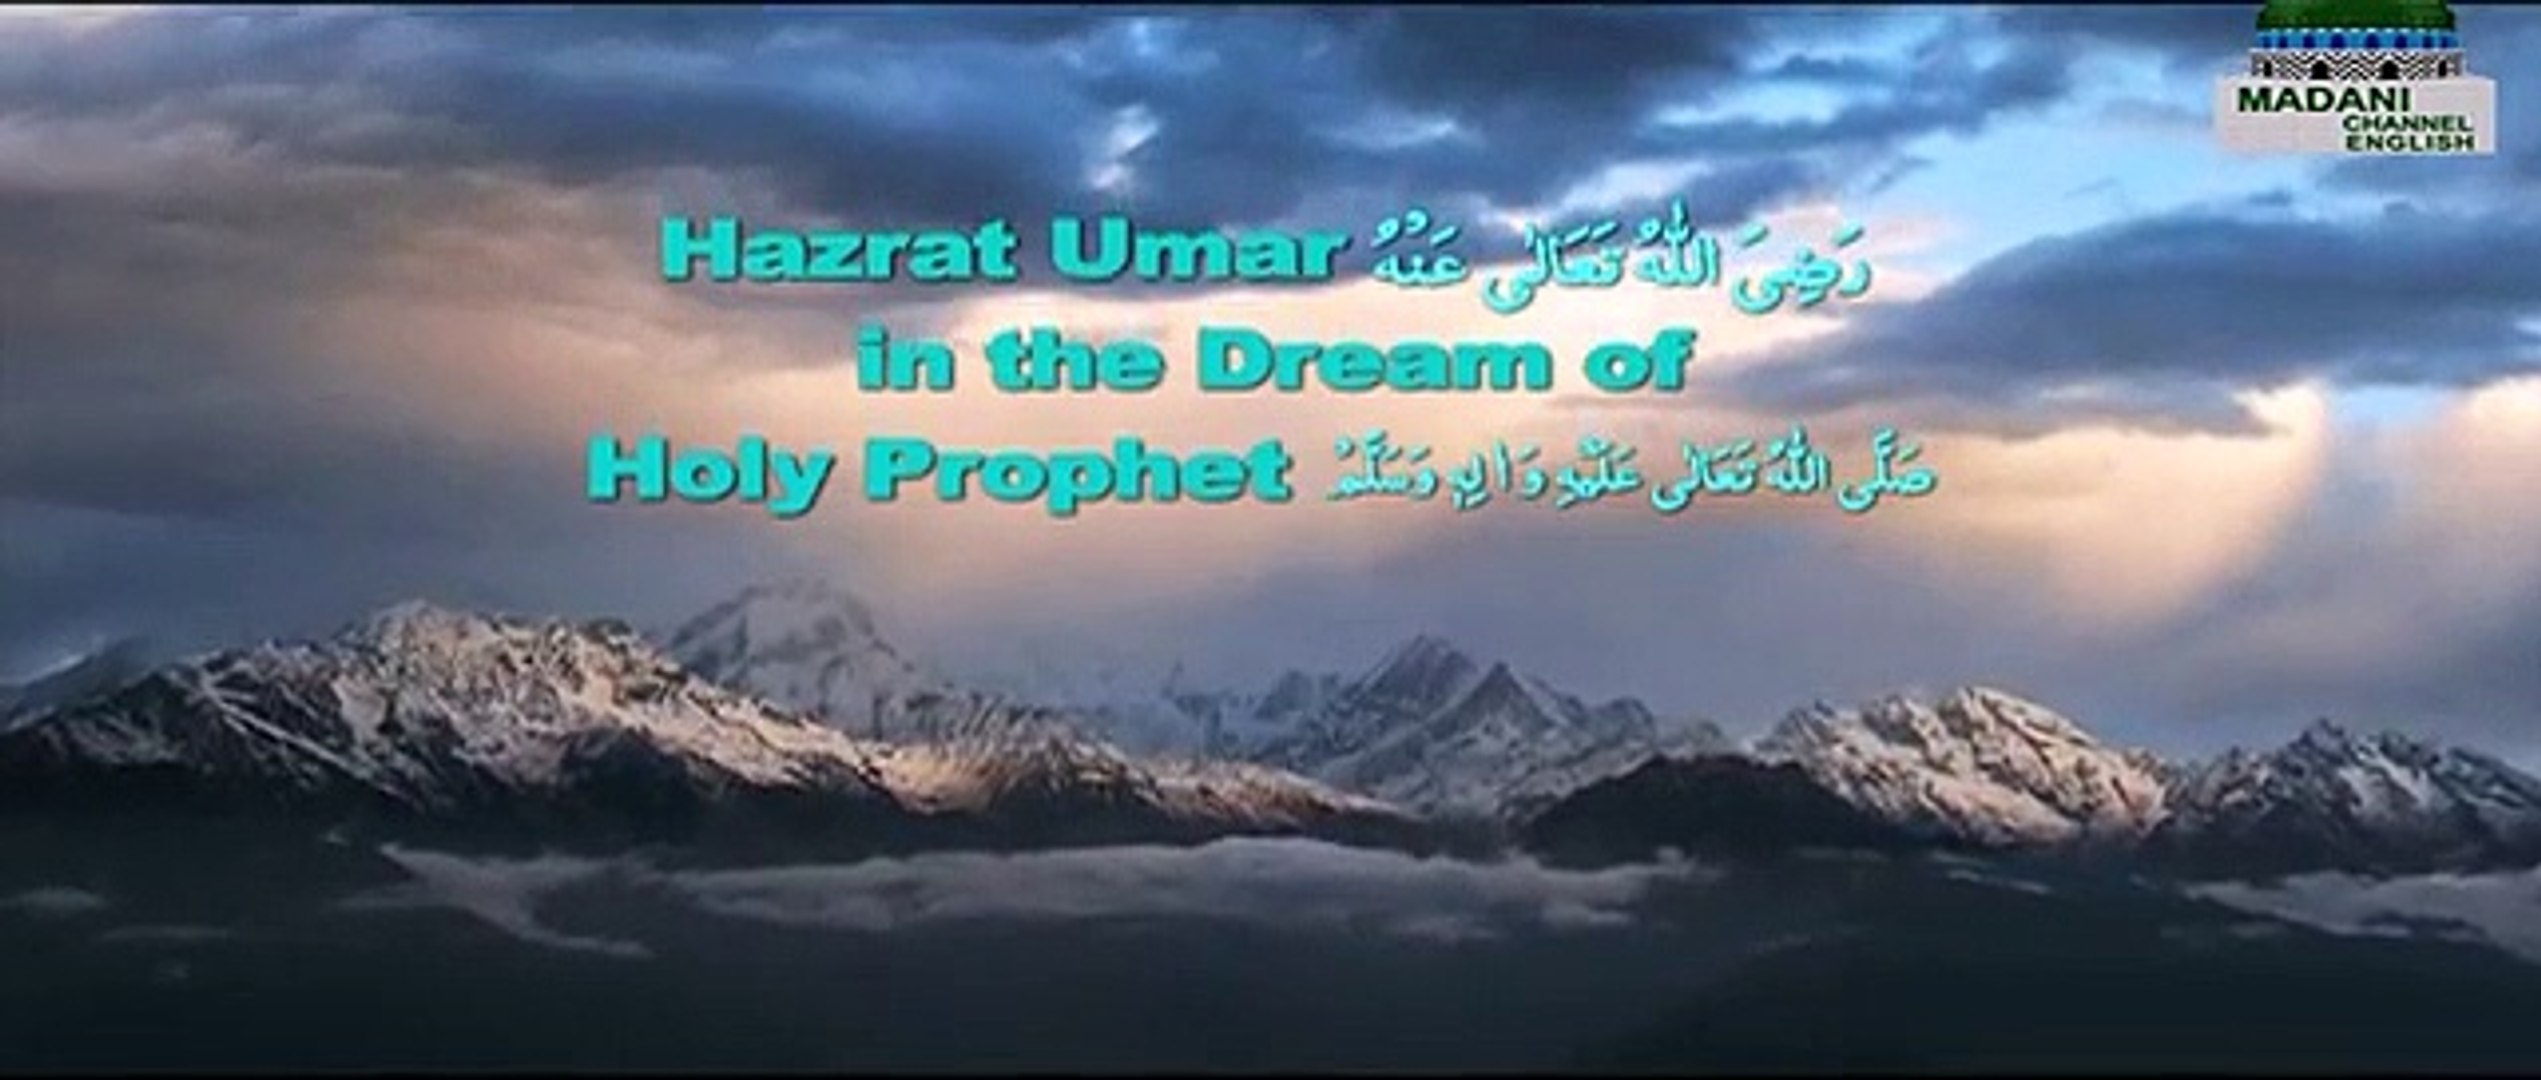 Hazrat Umar in the Dream of Holy Prophet